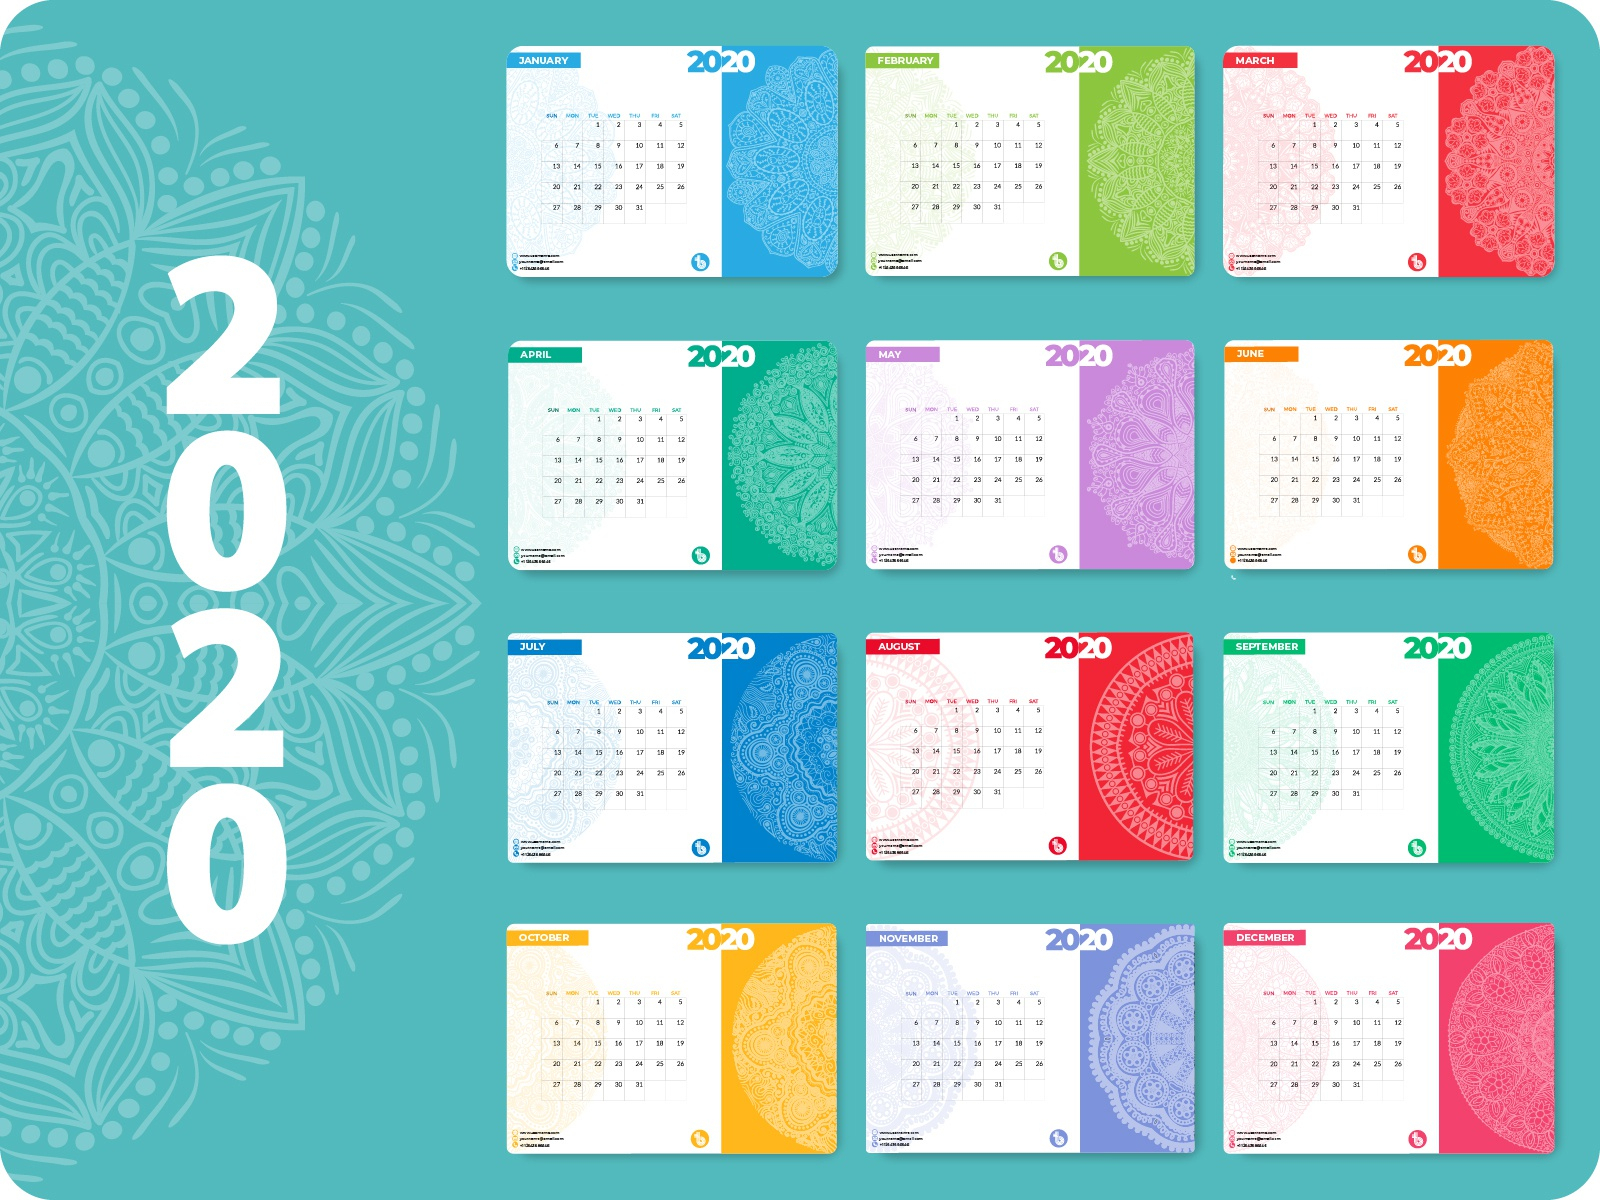 Calendar Design 2020 By Persfire On Dribbble